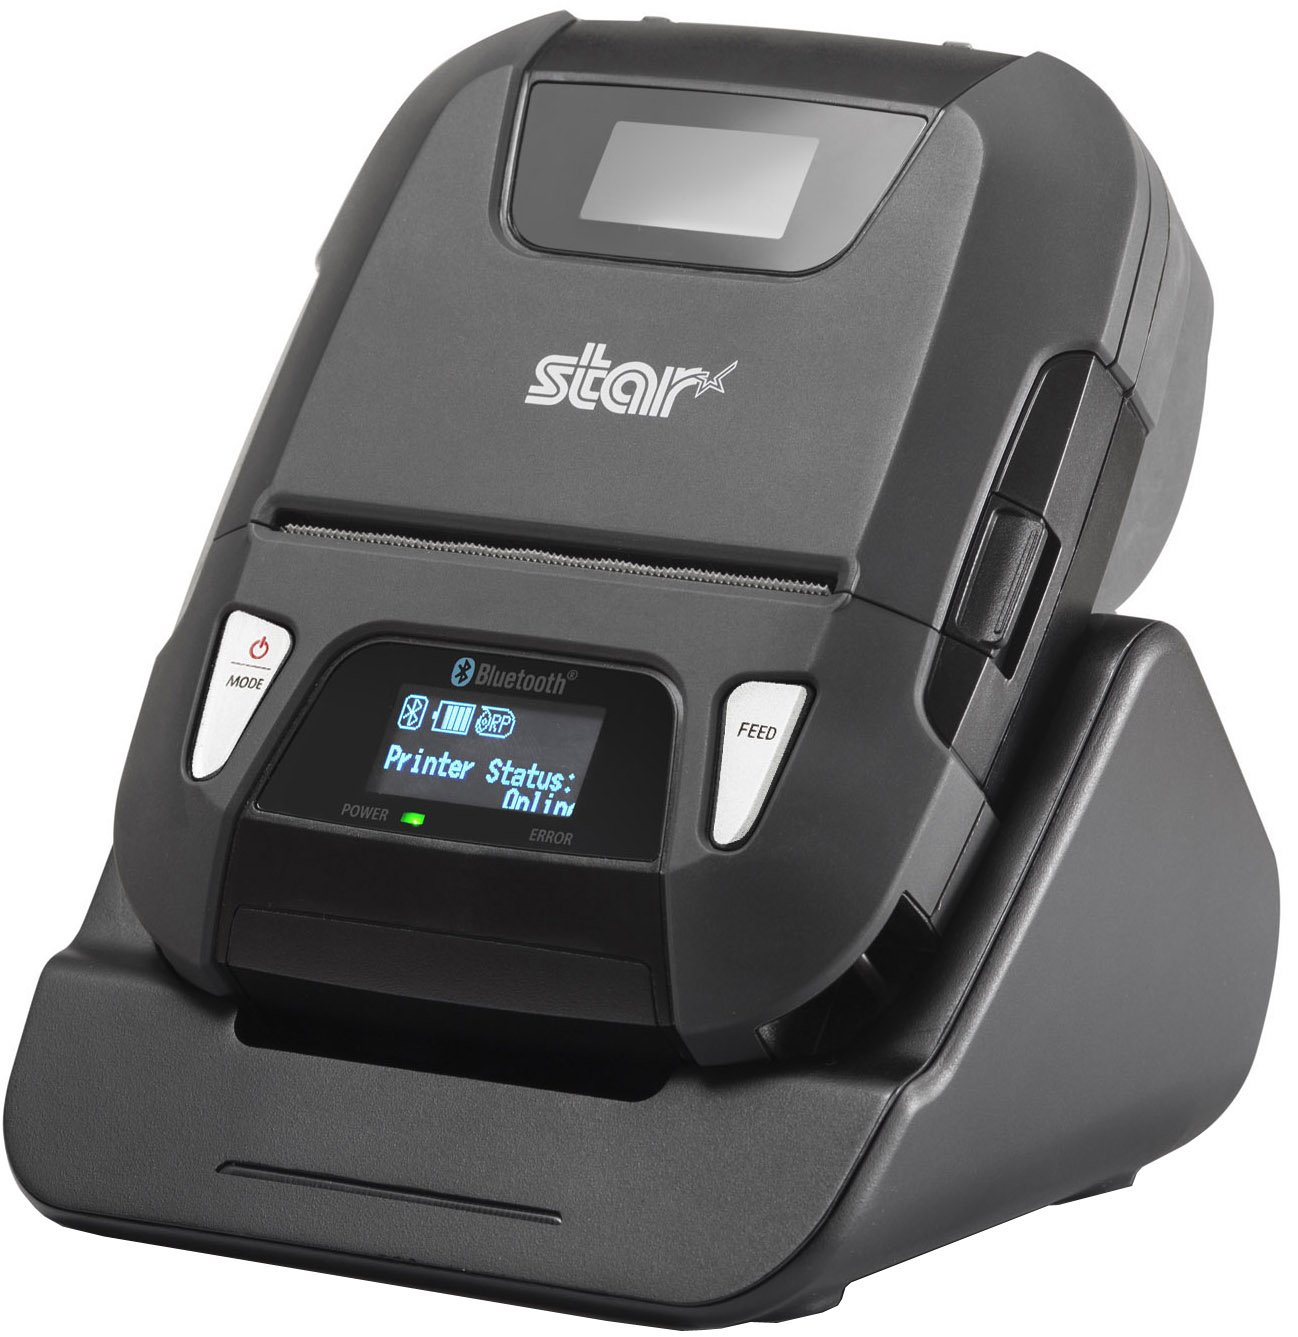 Star Micronics SM-L300 Portable Bluetooth Receipt and Label Printer with Tear Bar - Supports iOS, Android, Windows